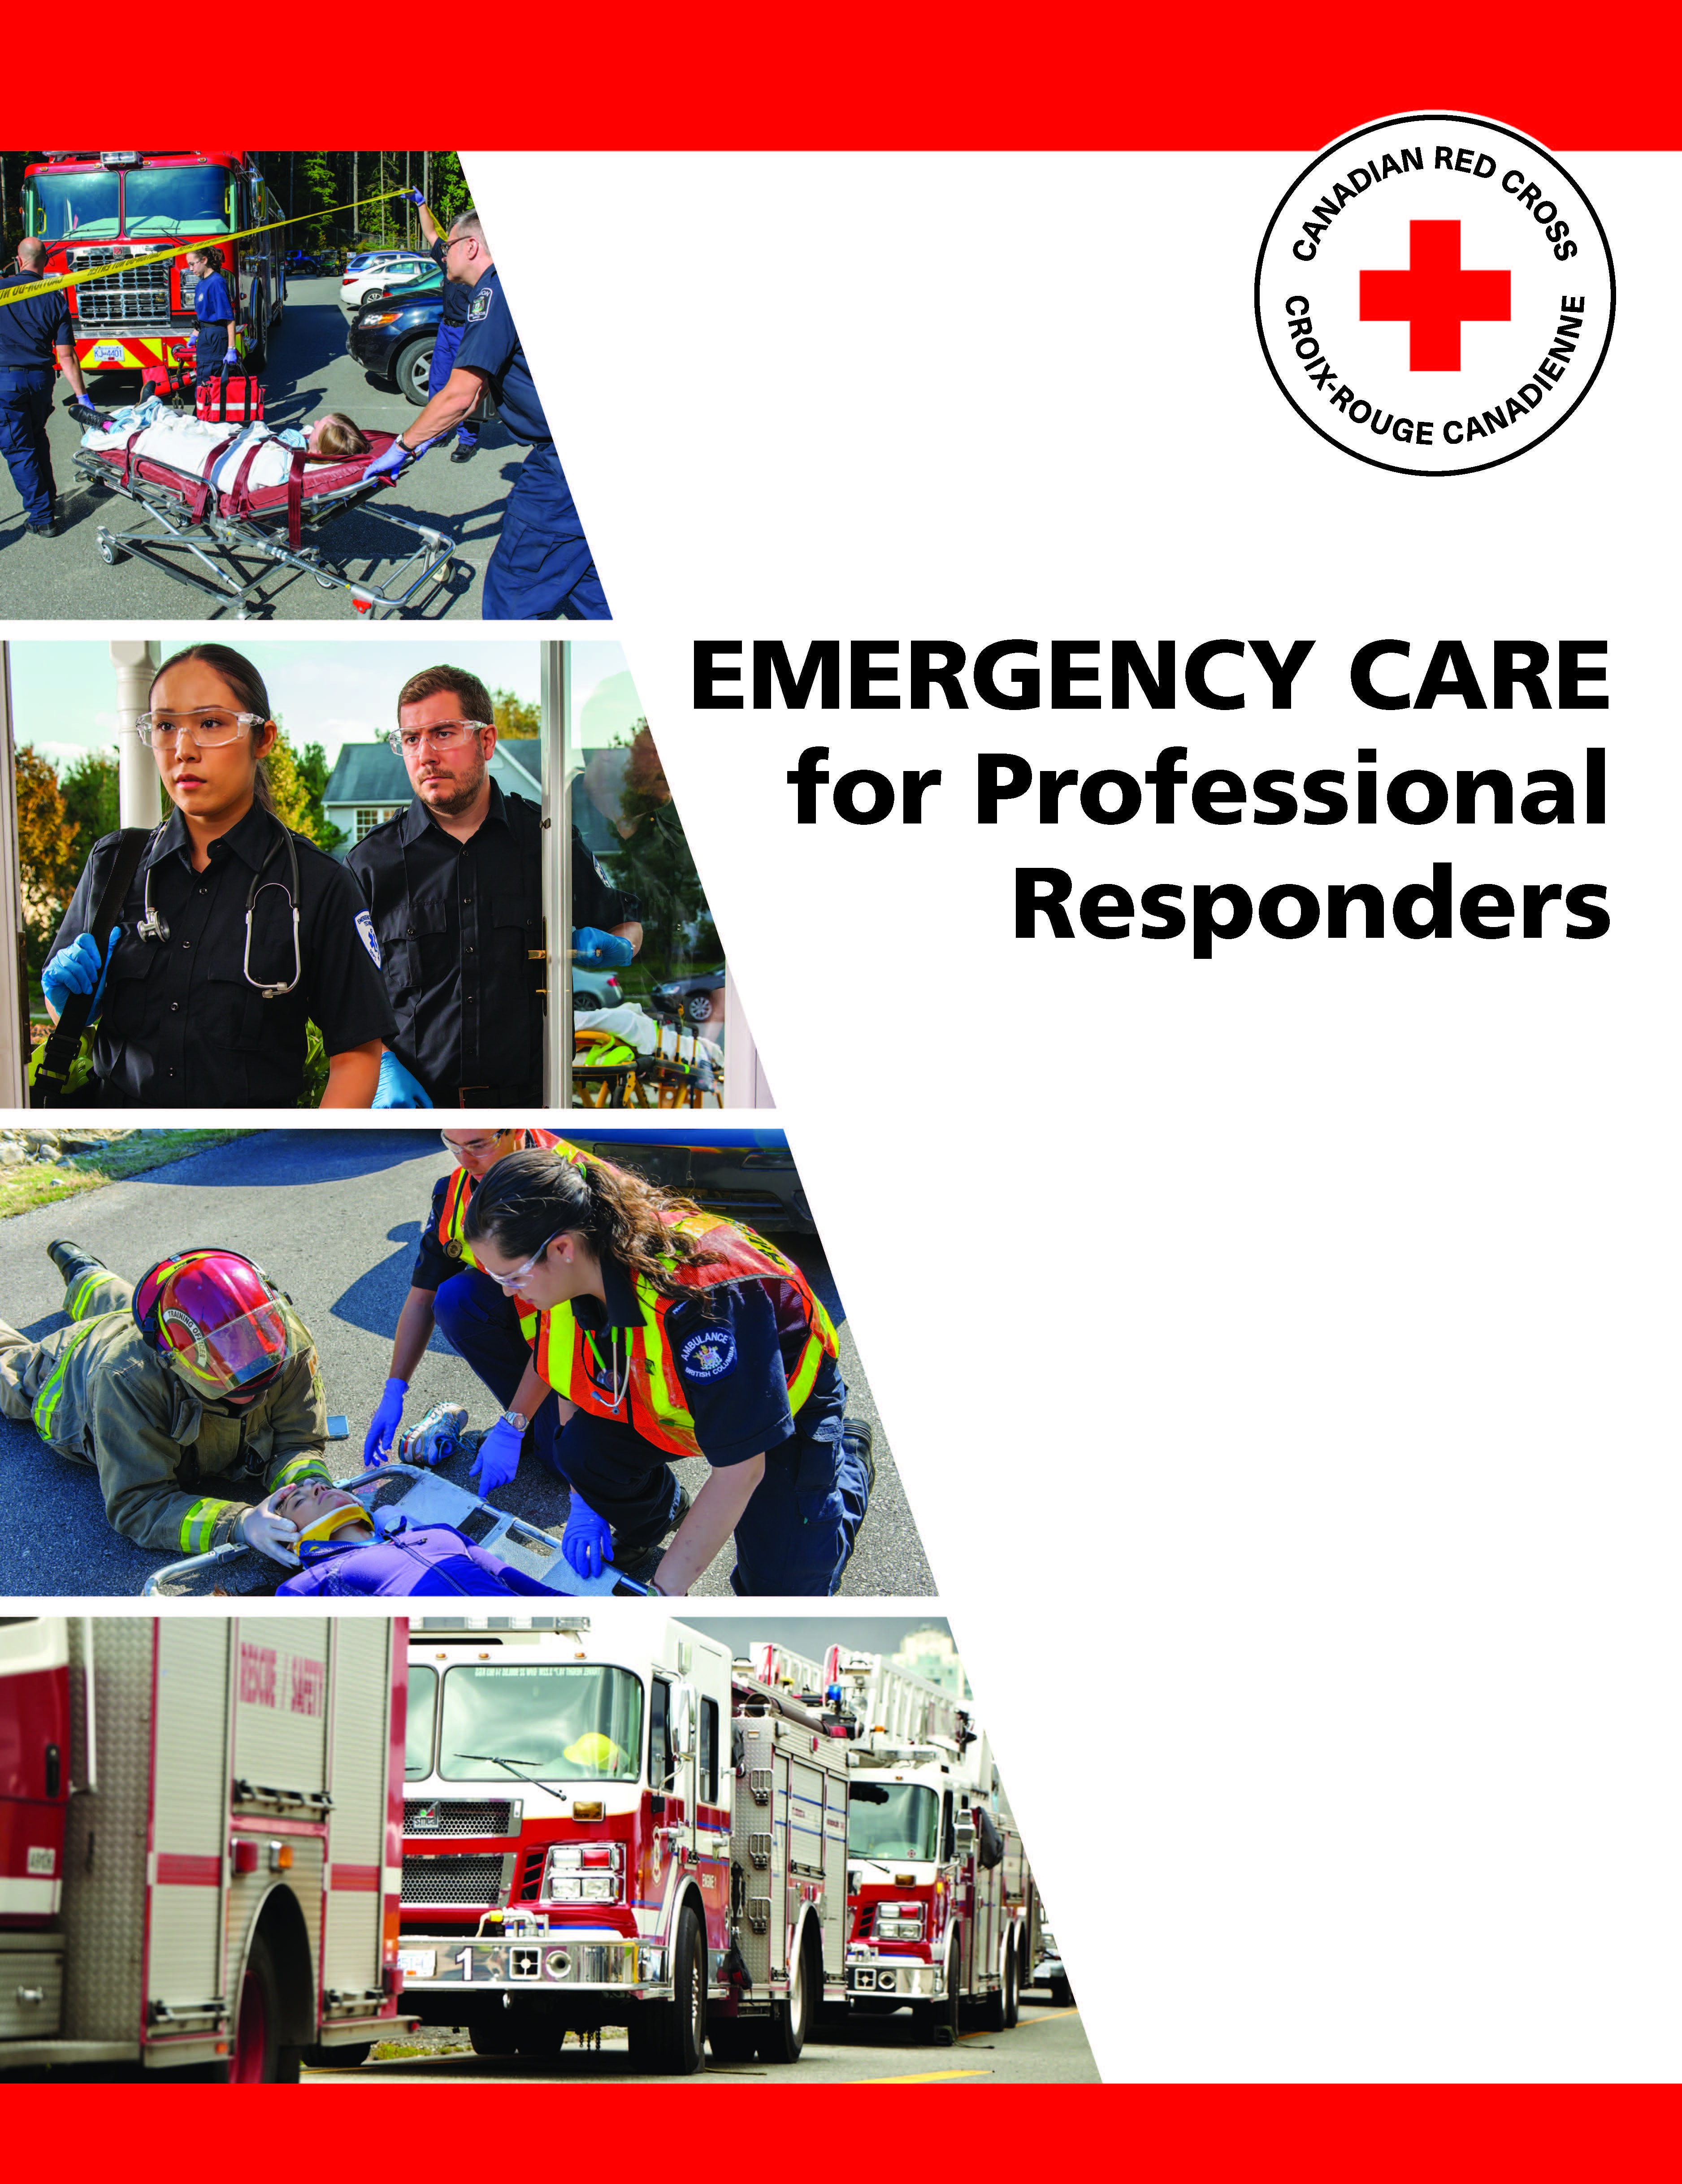 Emergency Care for Professional Responders image